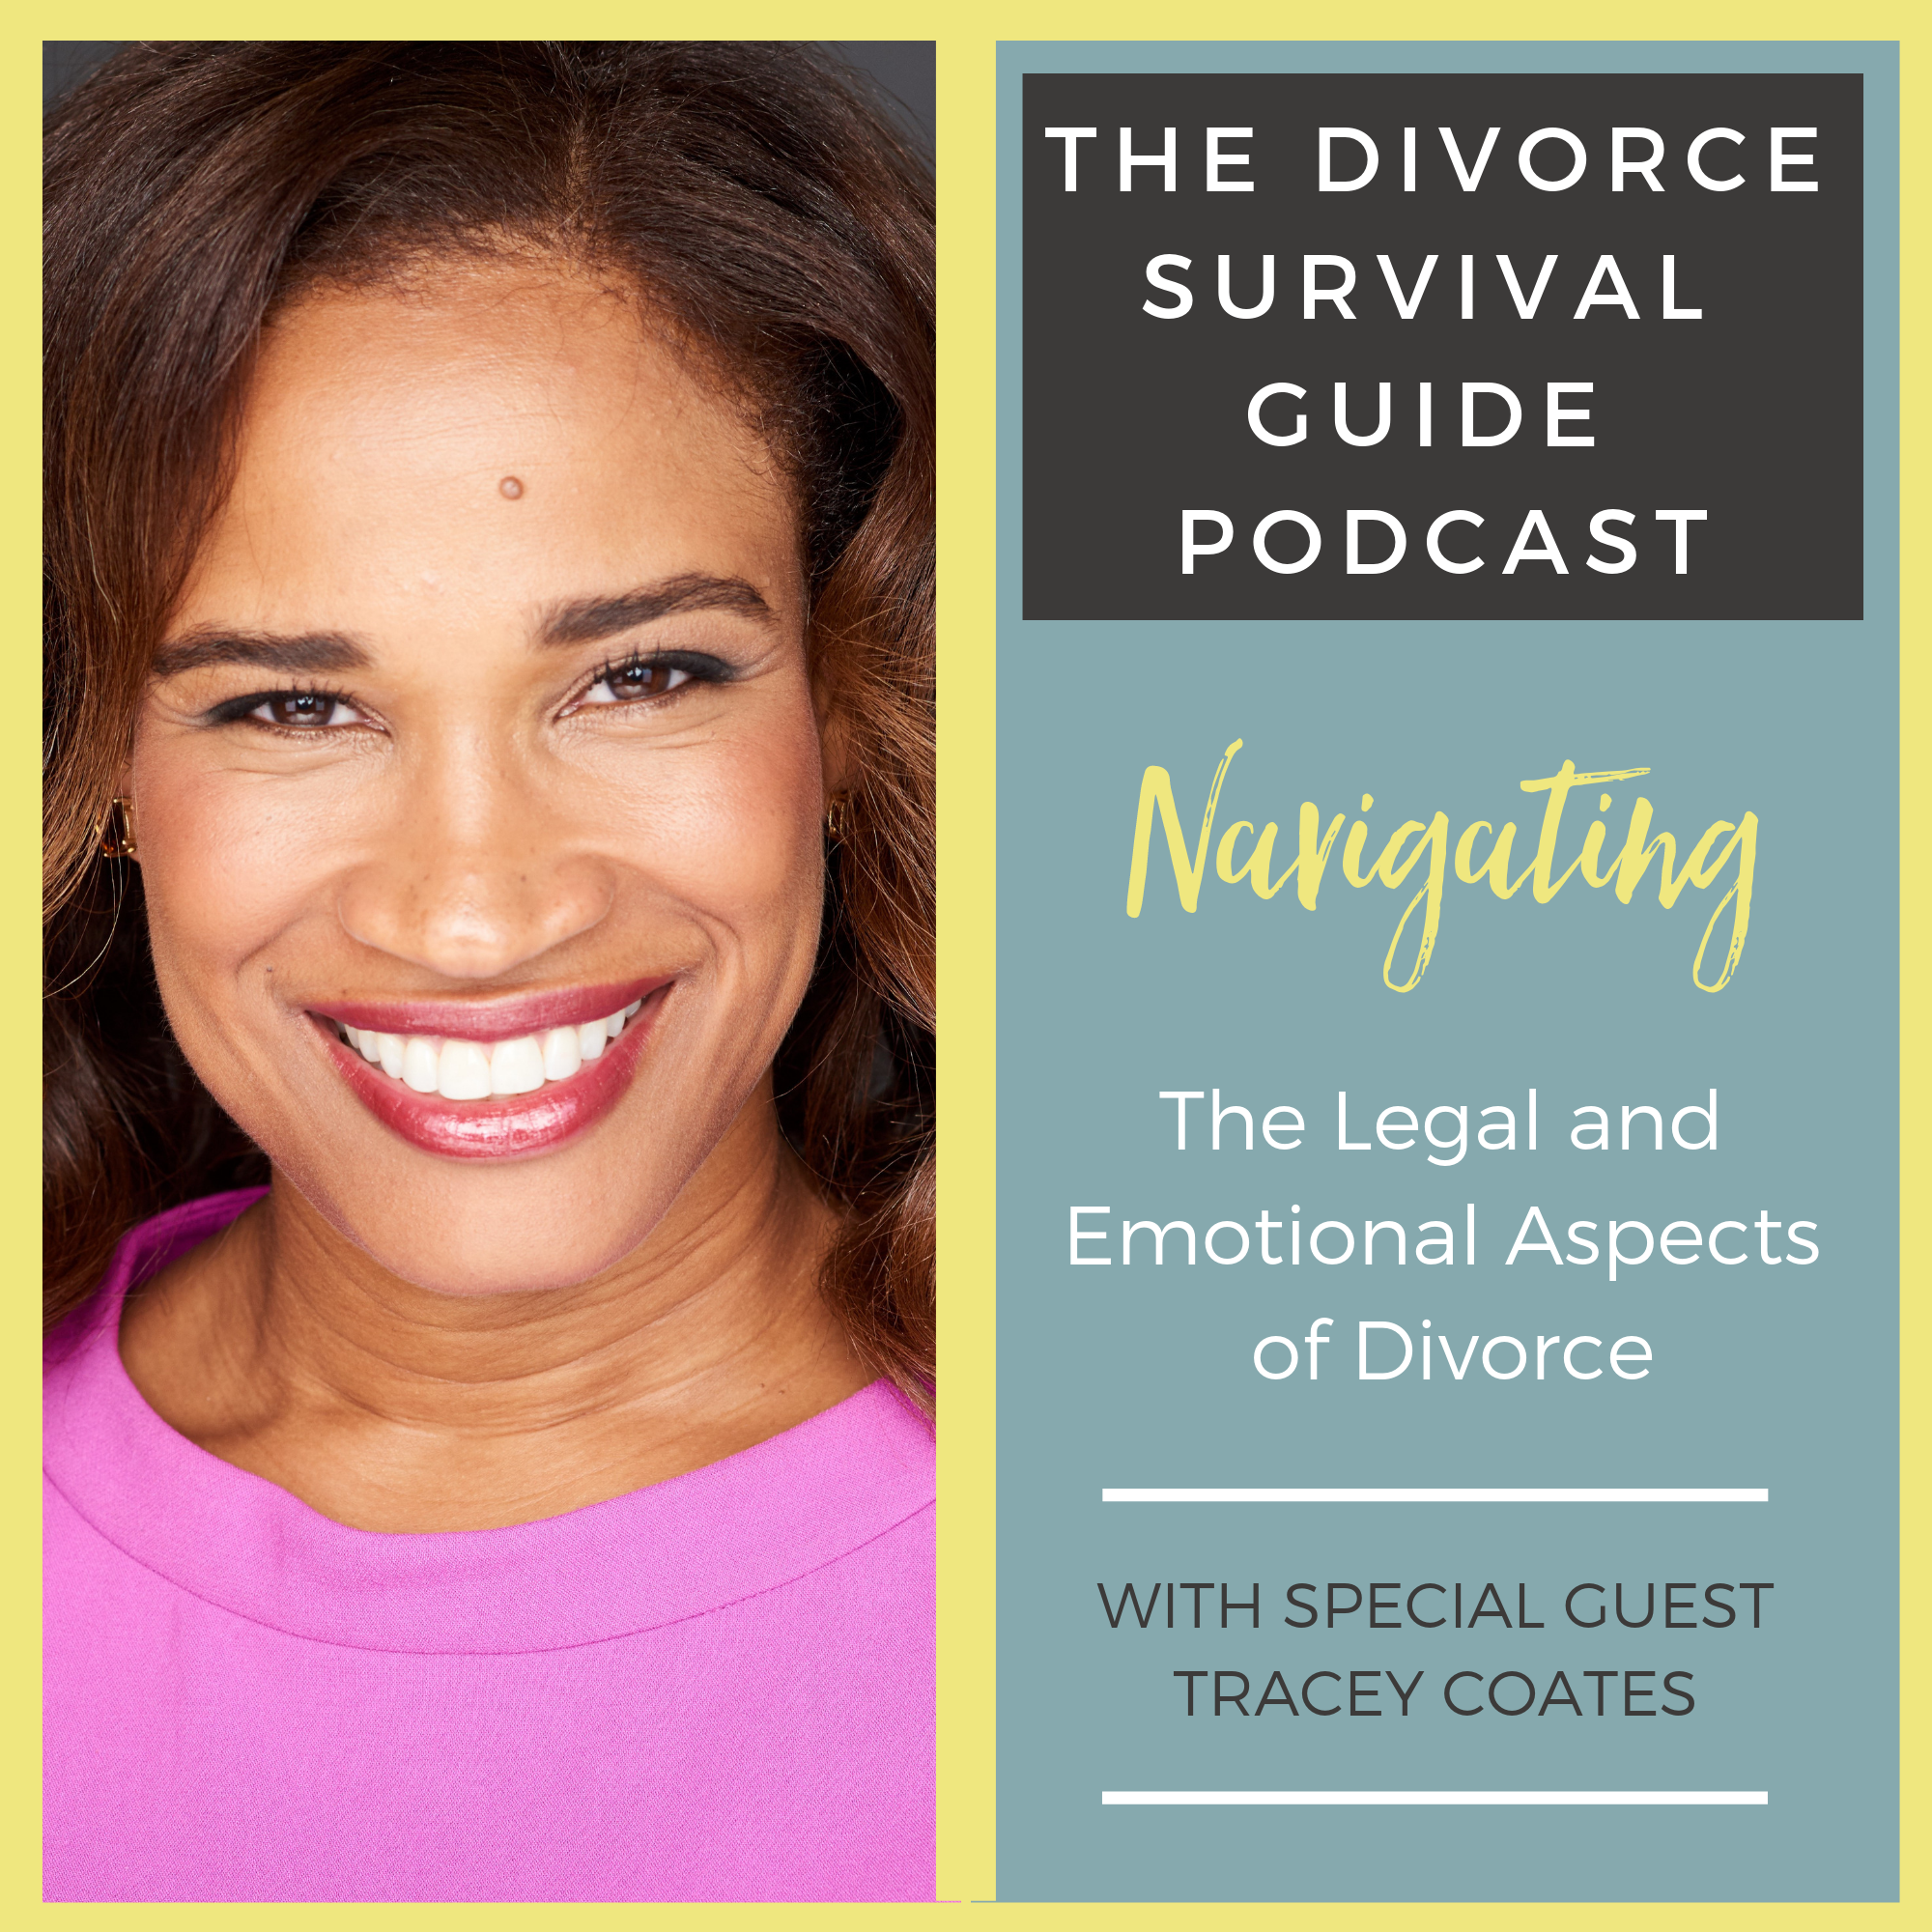 The Divorce Survival Guide Podcast - Navigating the Legal and Emotional Aspects of Divorce with Tracey Coates